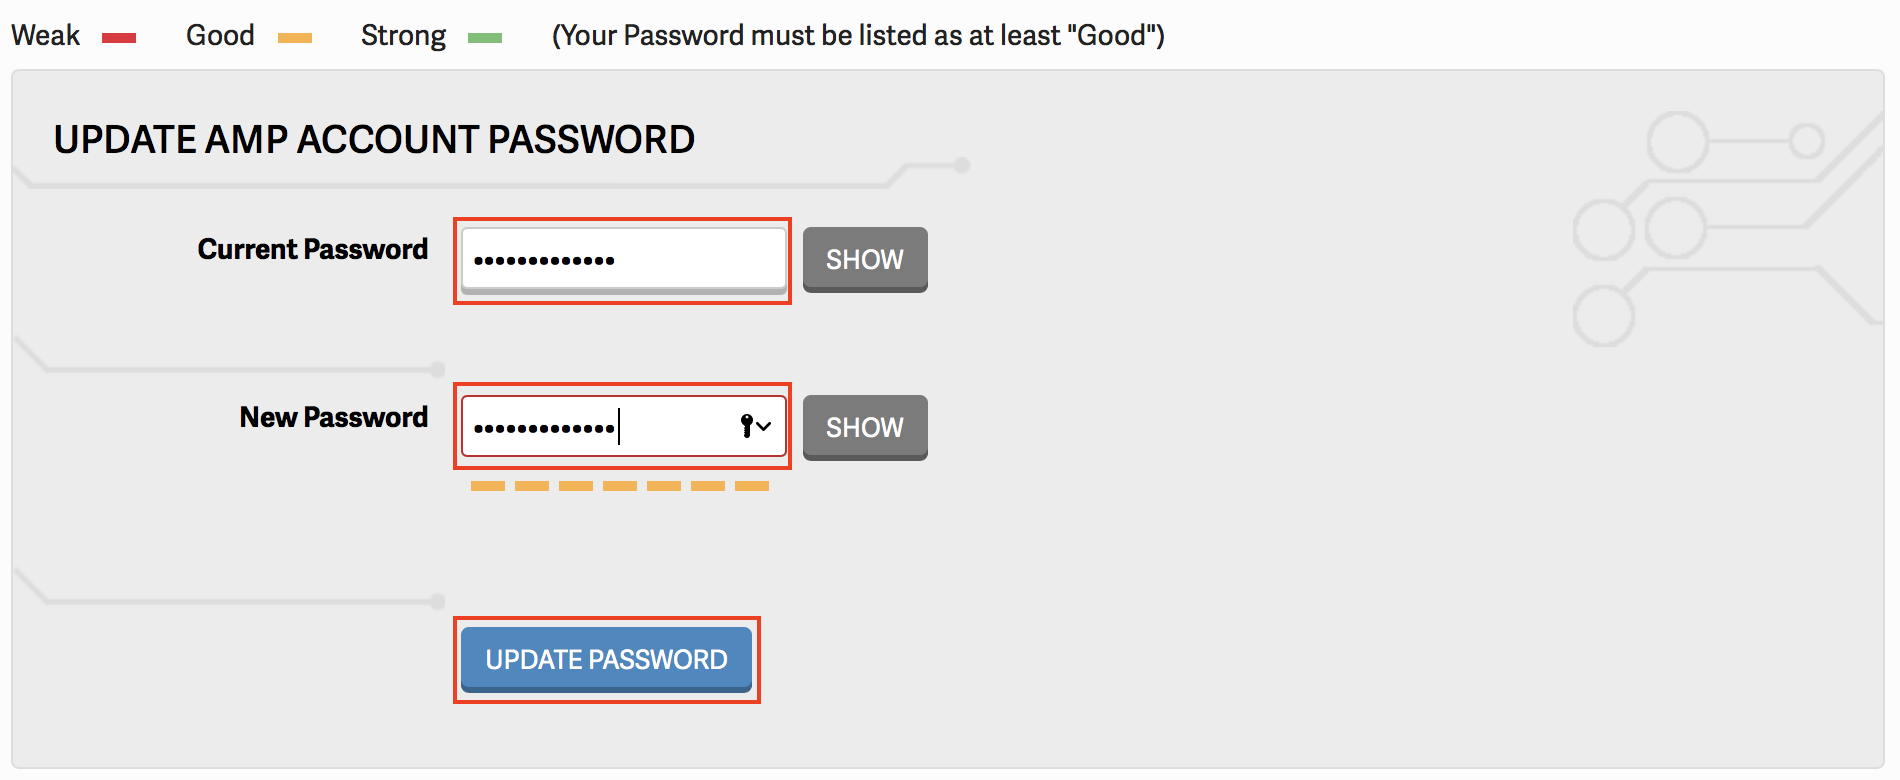 Update AMP Password section of AMP displayed with password fields and UPDATE PASSWORD button highlighted.